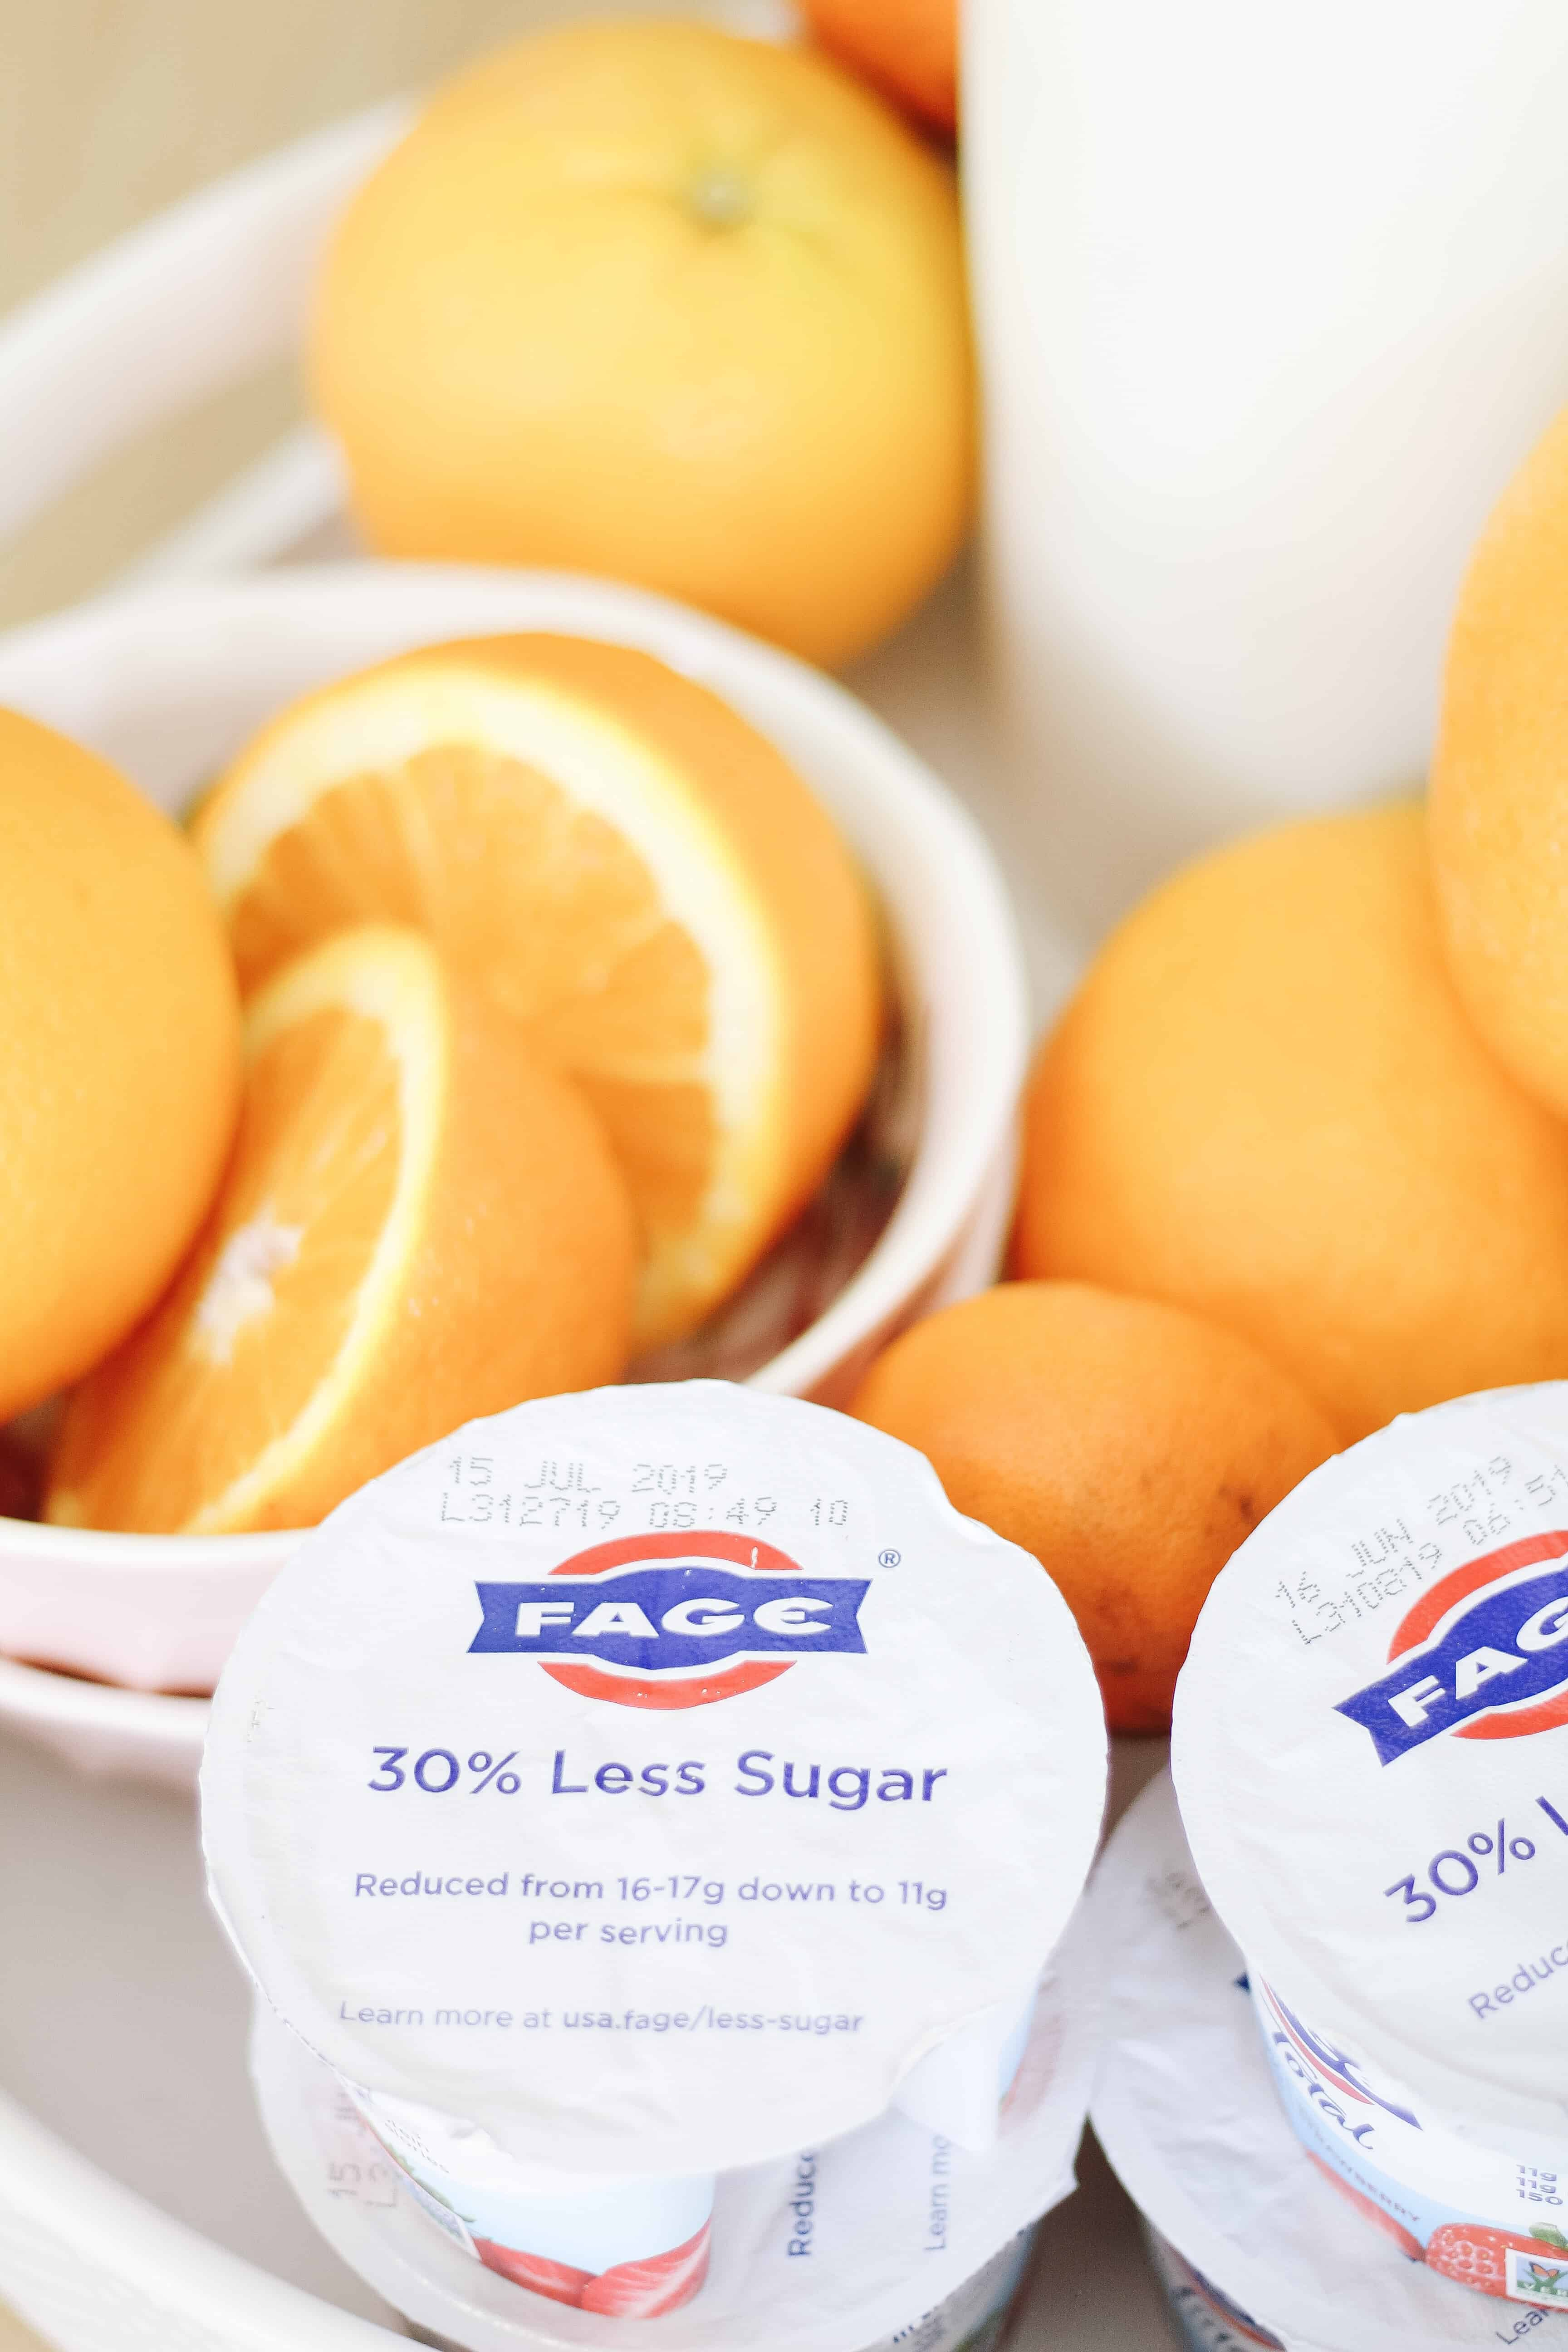 FAGE yogurt next to oranges